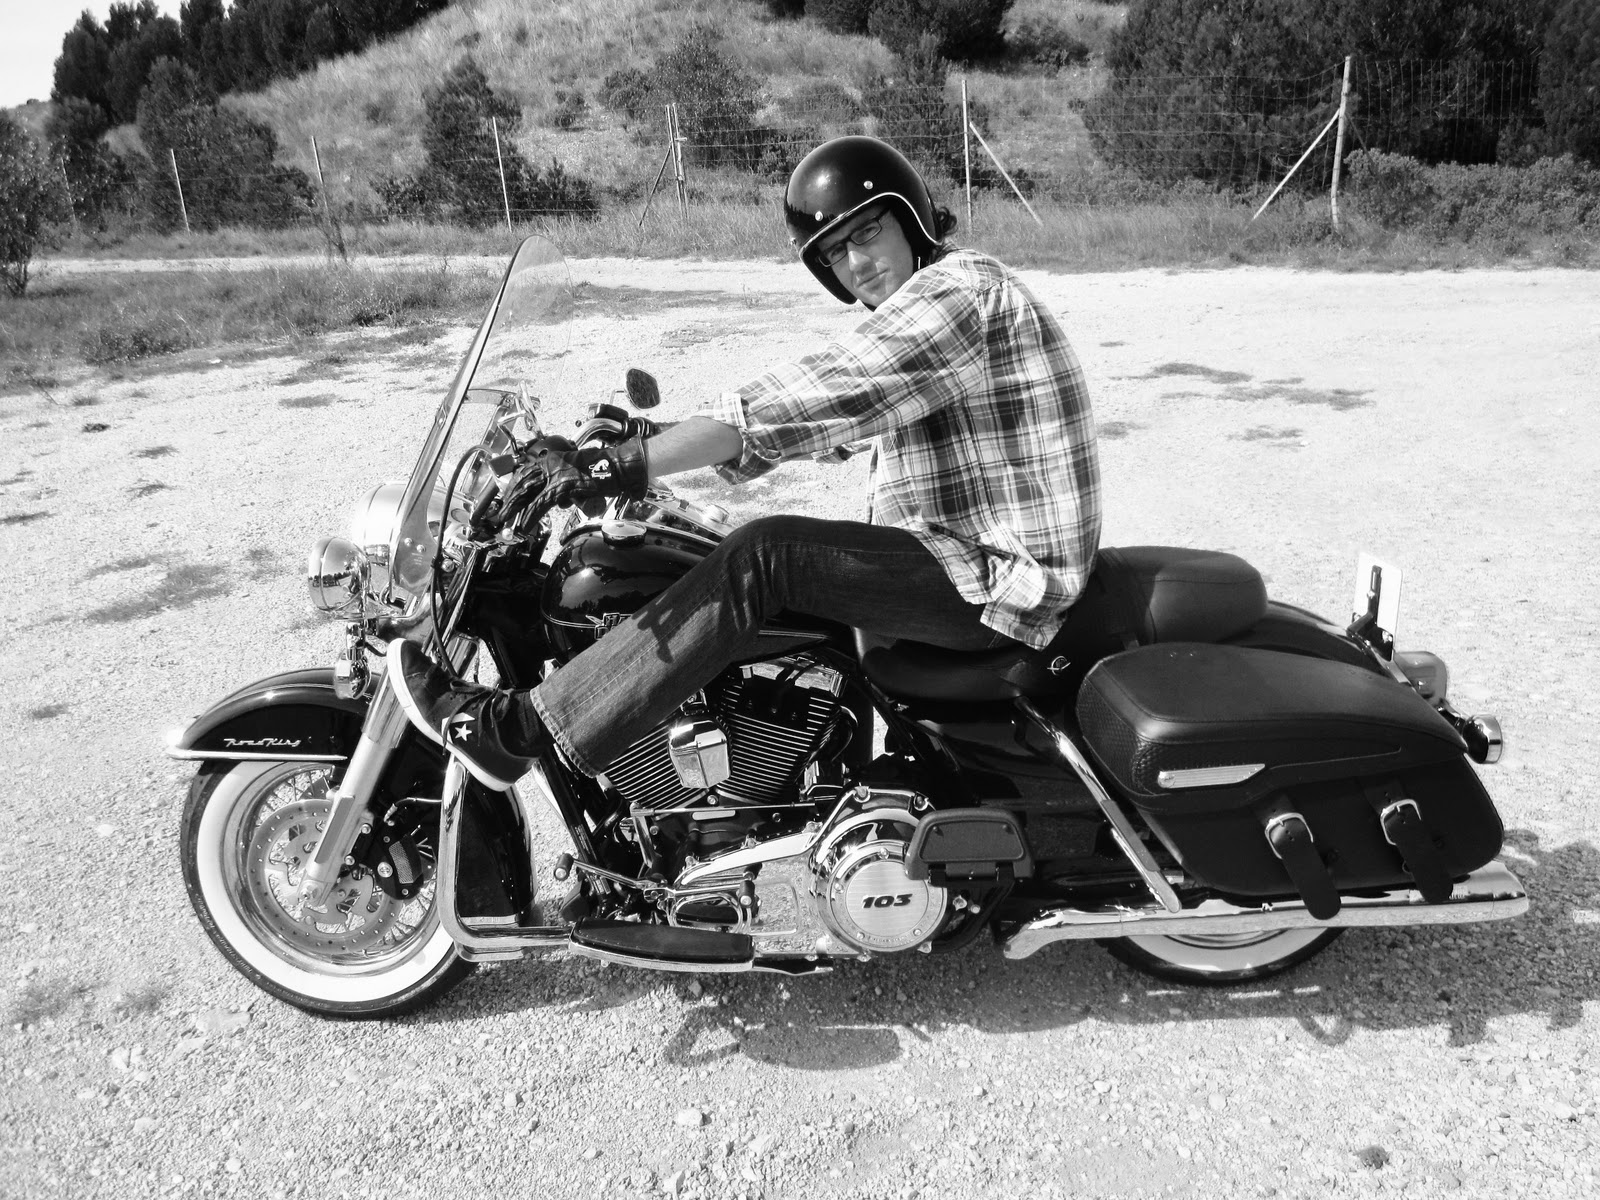 Road King Bobber http://hardsunmag.blogspot.com/2011/09/road-king-switchback-road-queen.html